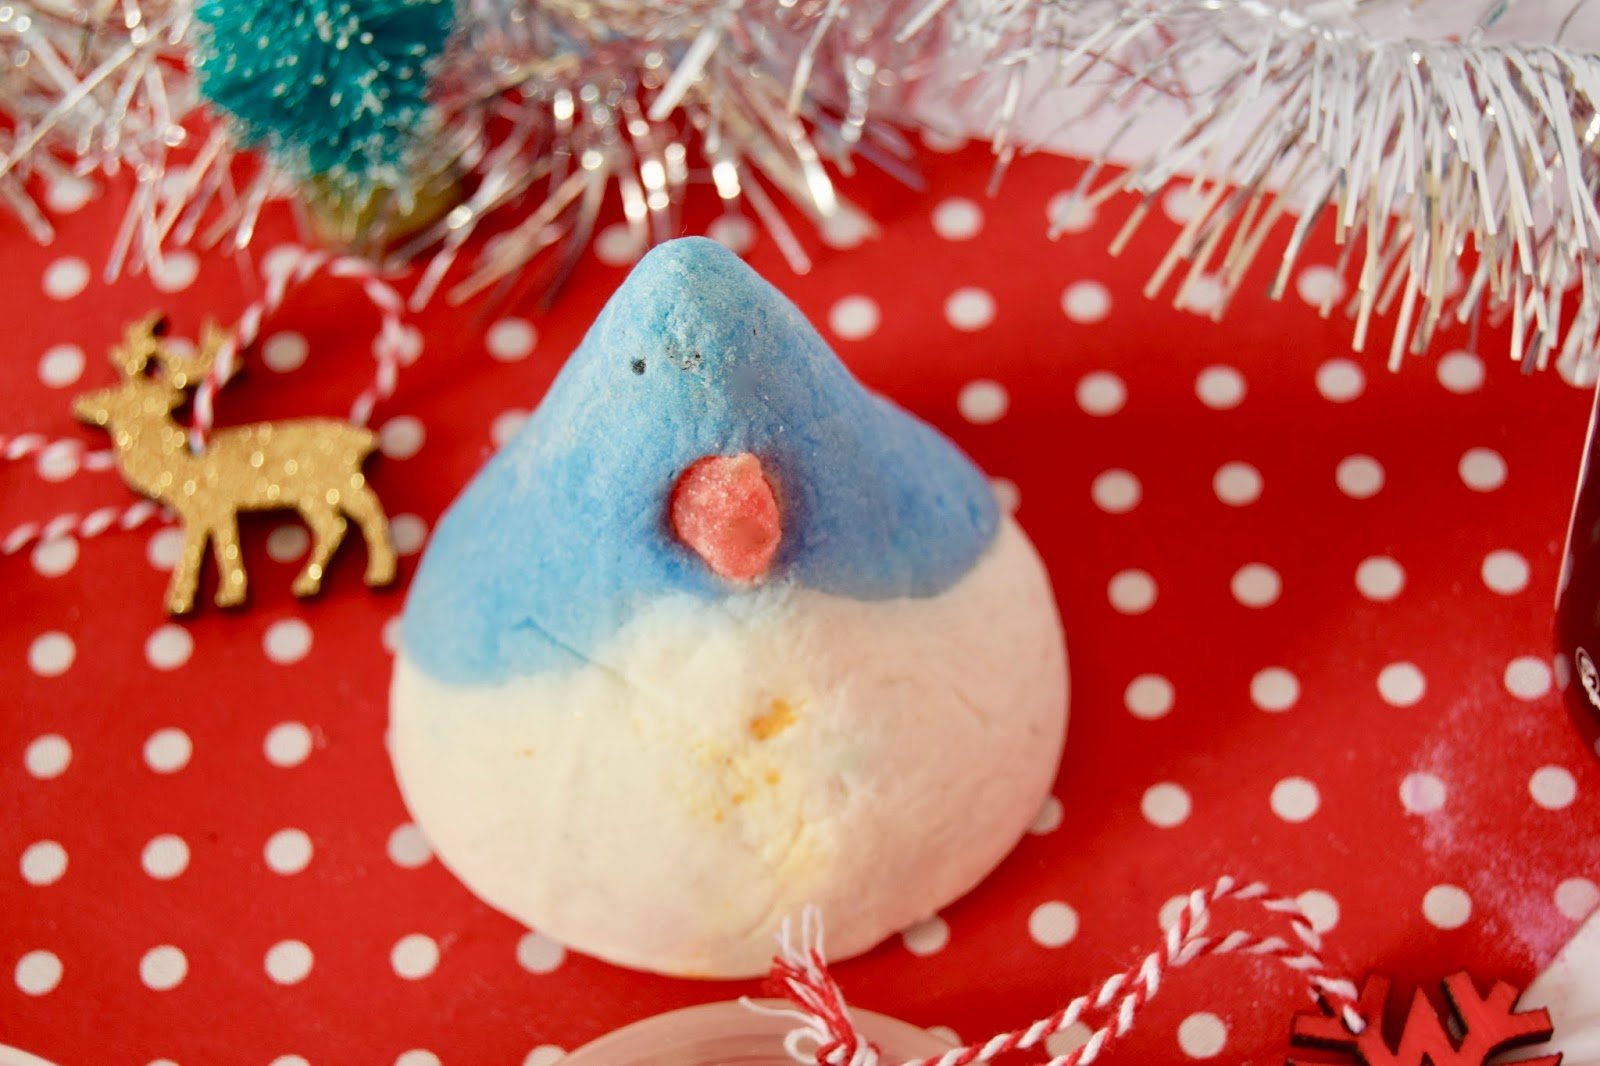 Lush The Christmas Penguin Bubble Bar